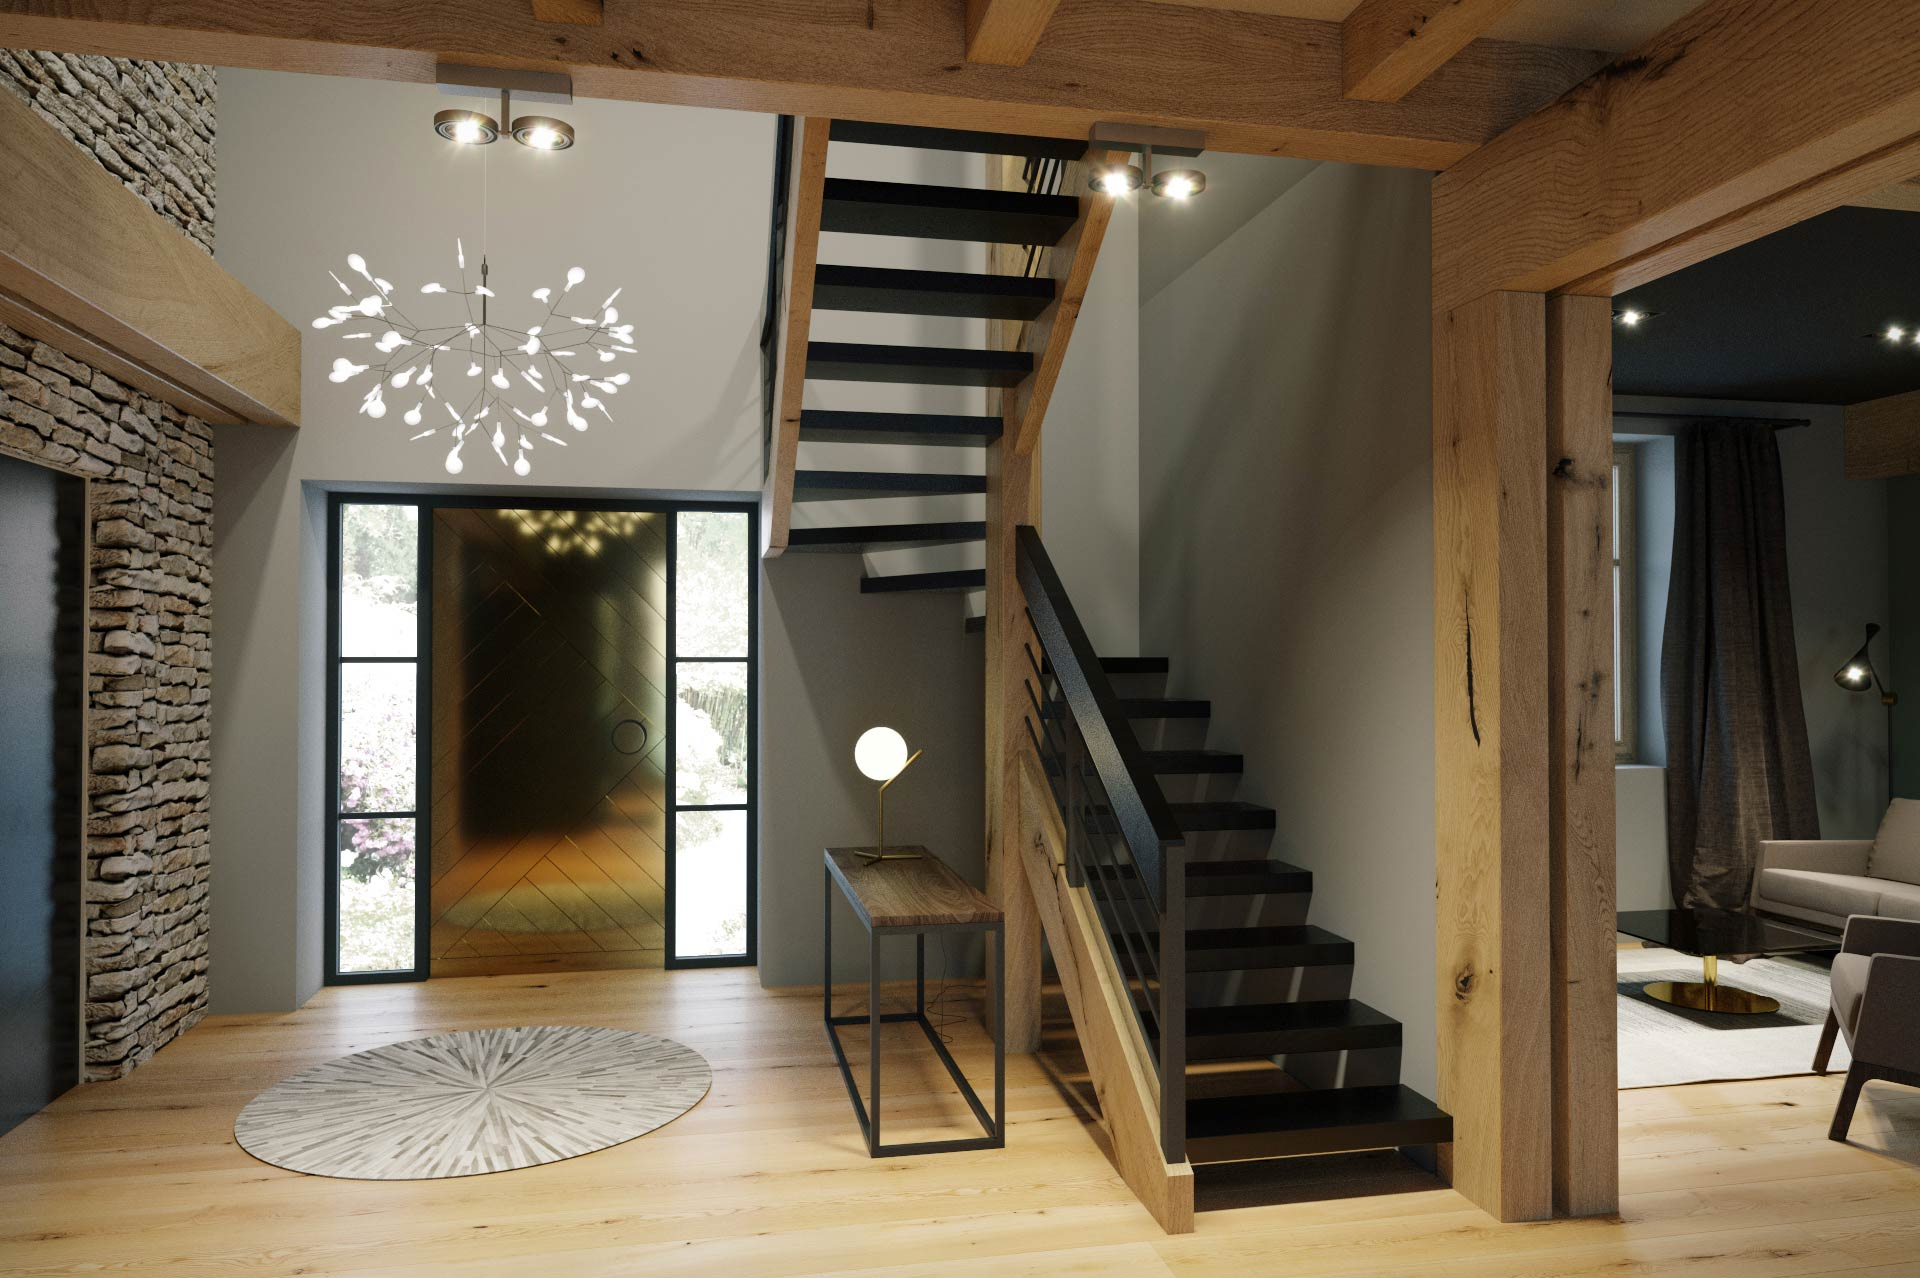 Visualization of a staircase in detached house